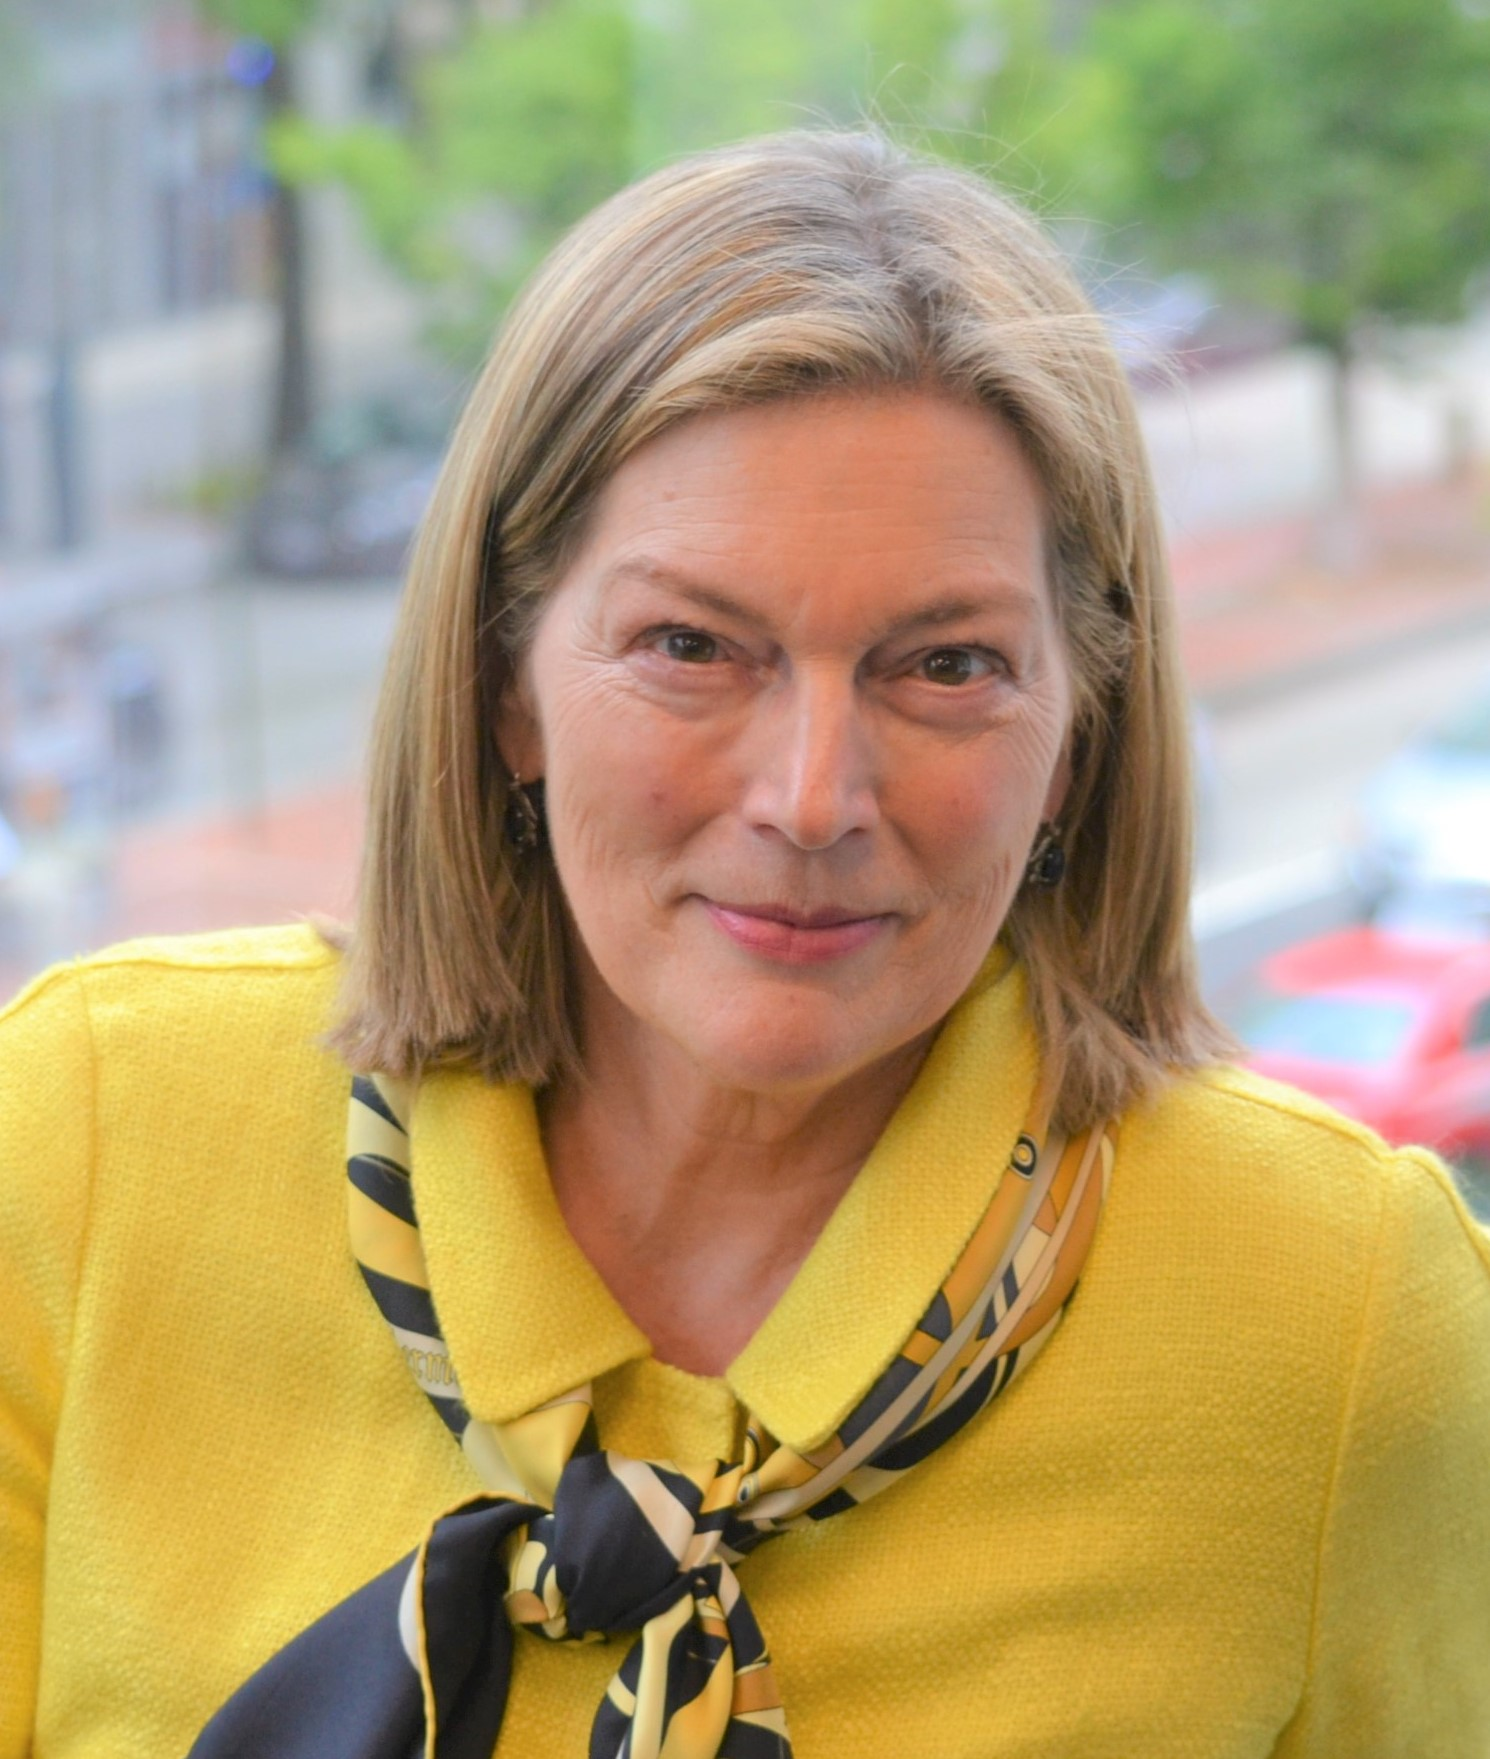 A headshot of Ambassador Stephens wearing a yellow blazer.